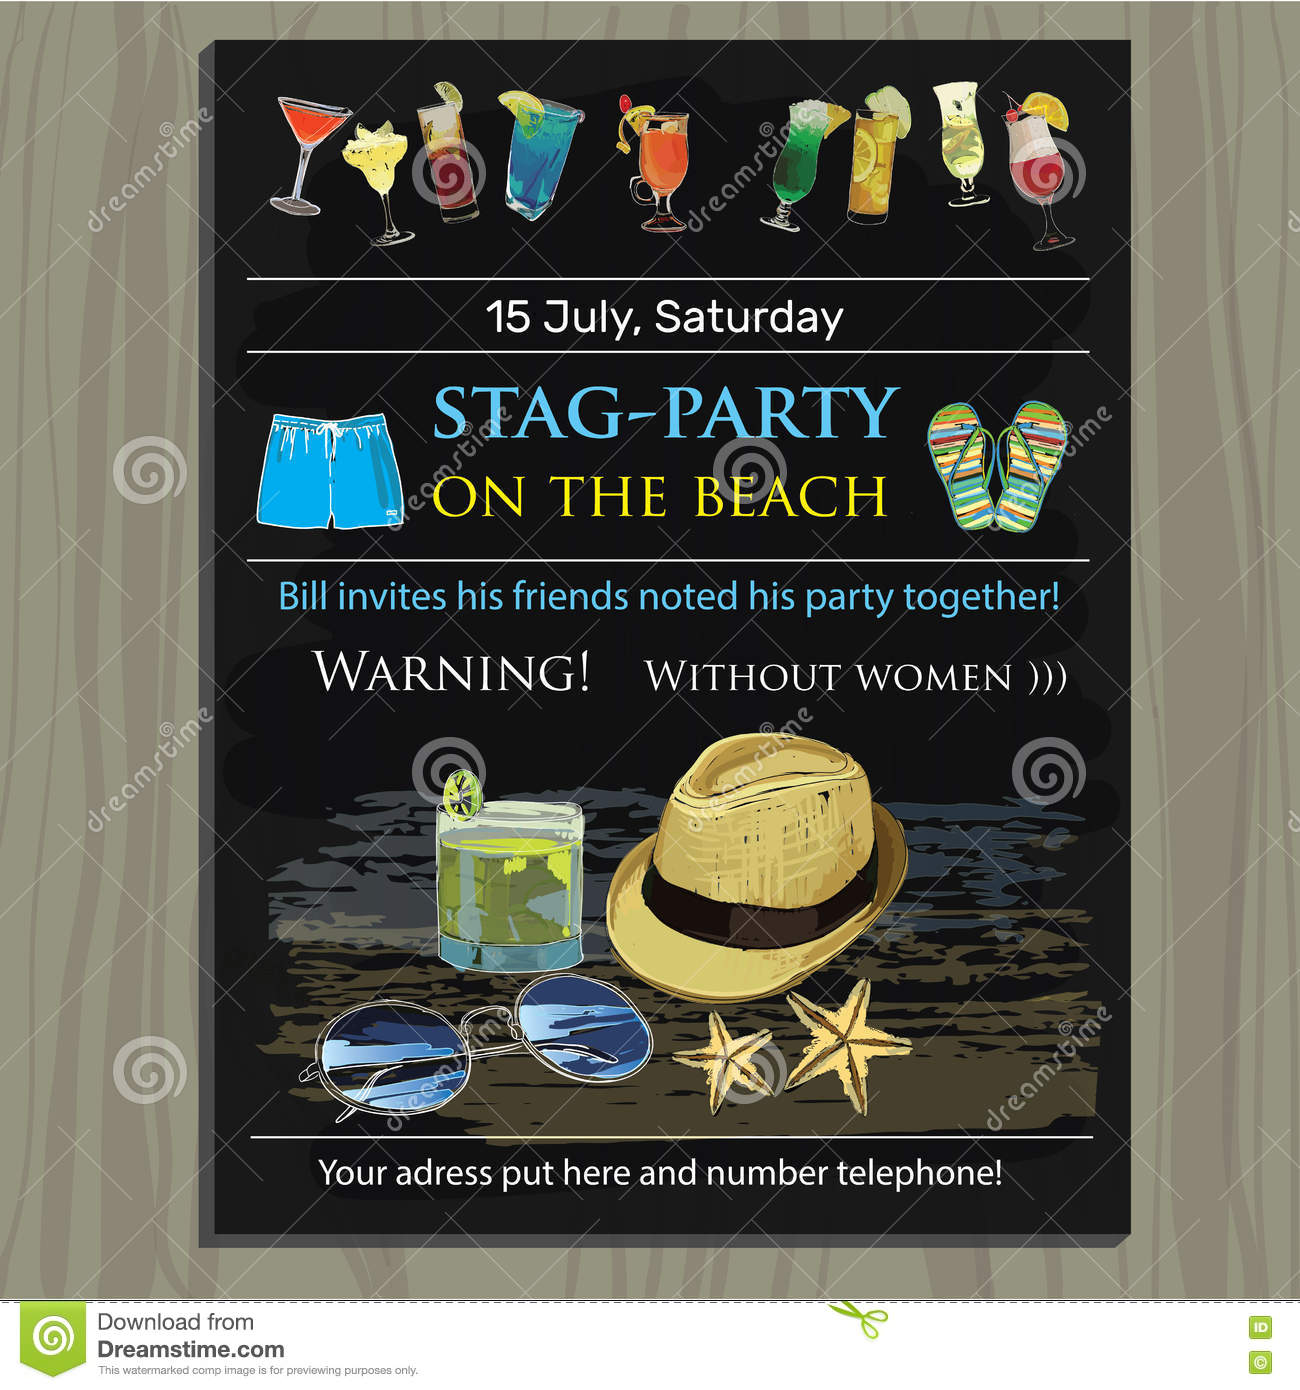 Stag party invite on the beach holiday vacation invitation ca stag party invite on the beach holiday vacation invitation ca monicamarmolfo Choice Image